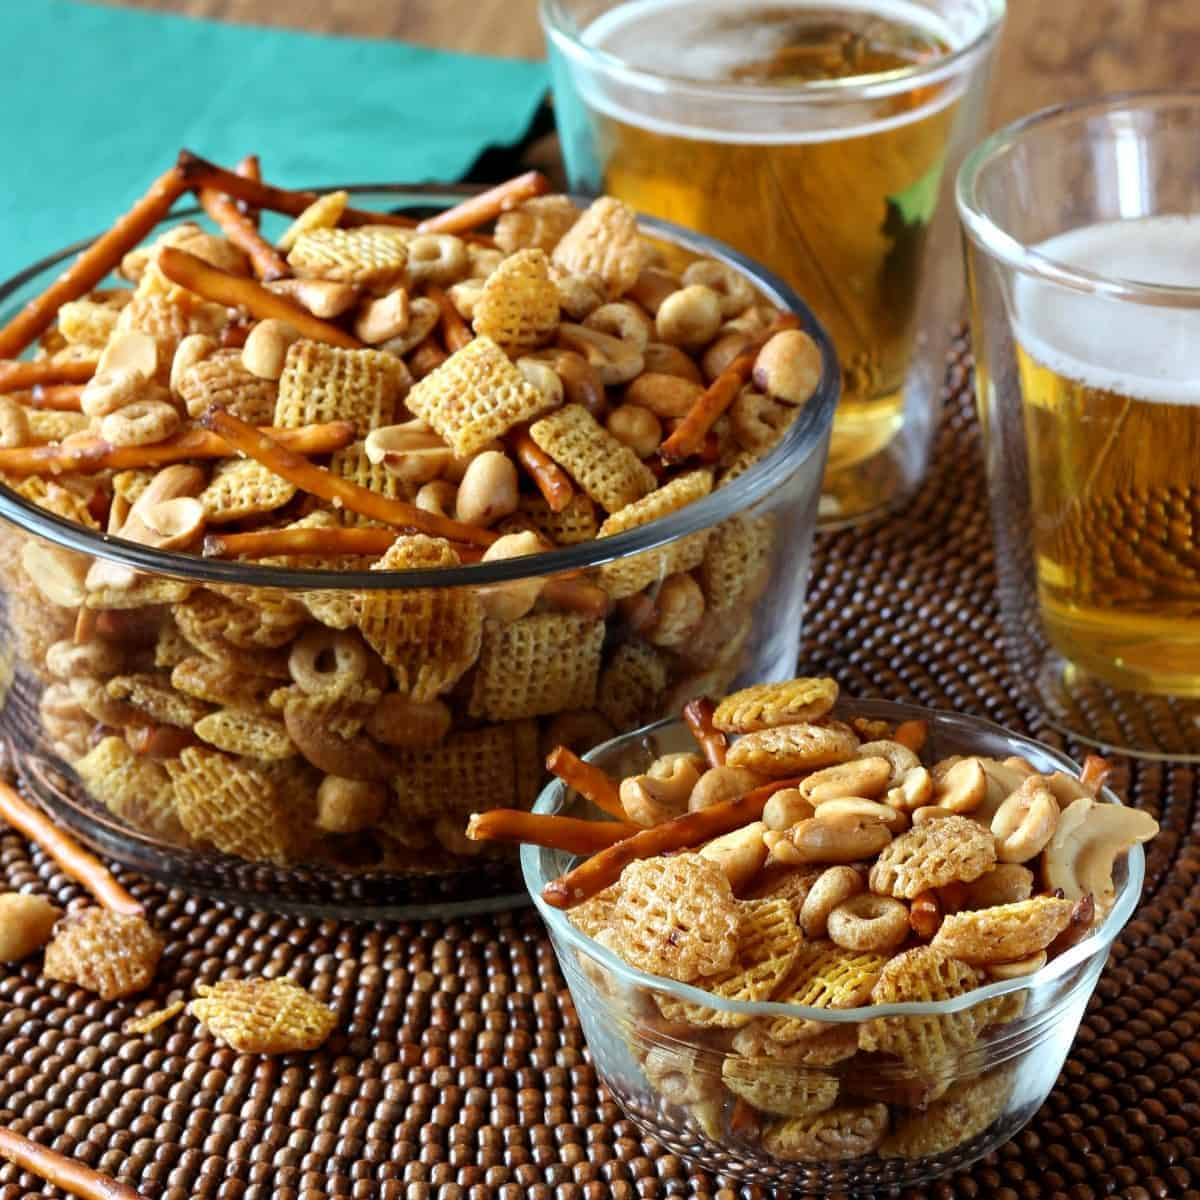 Two glass bowls filled with chex mix snack of cereal and nuts.